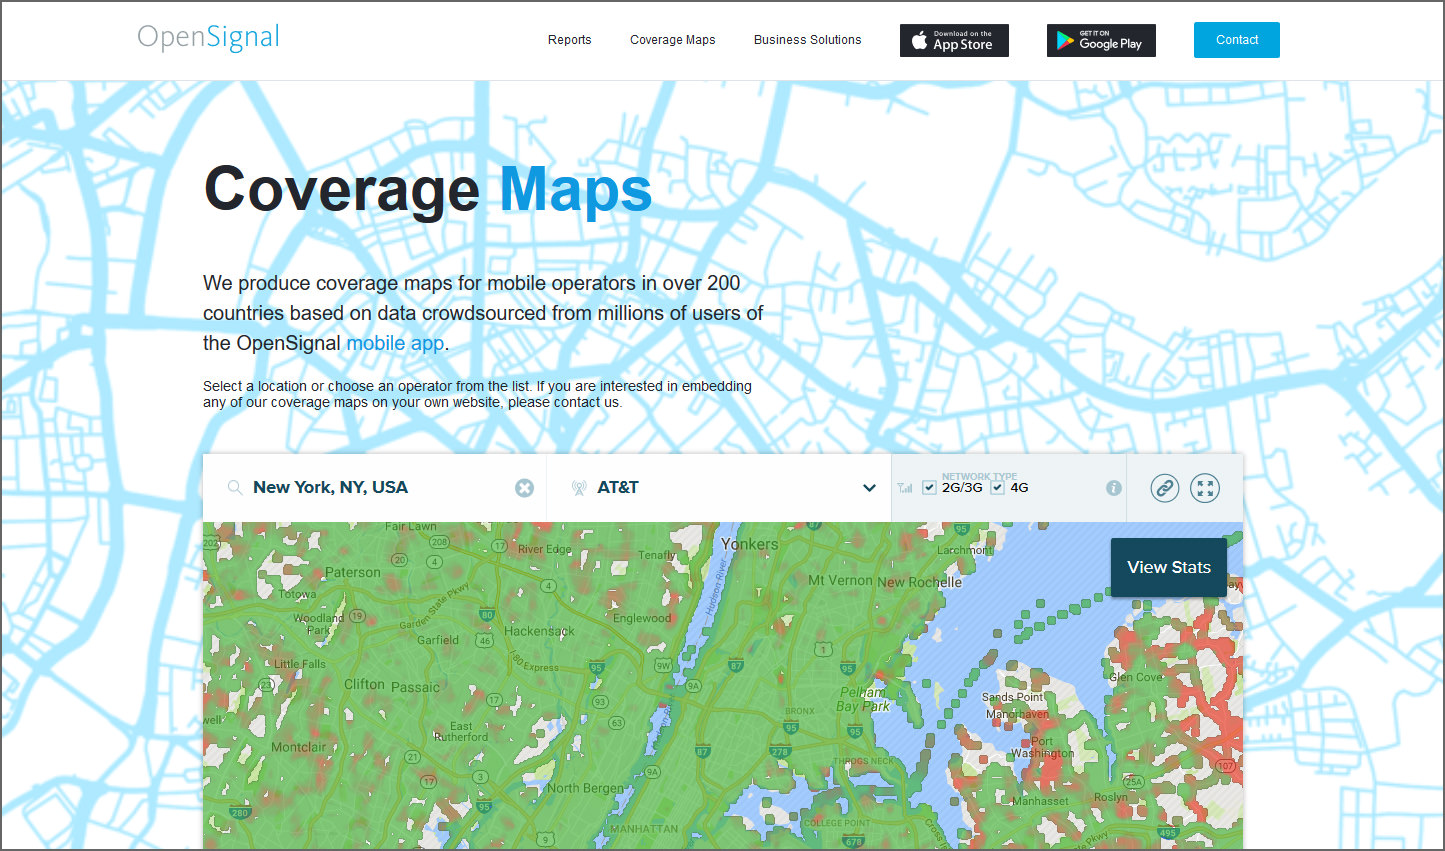 3 Cell Phone 3g 4g And Lte Speed And Coverage Map Comparison